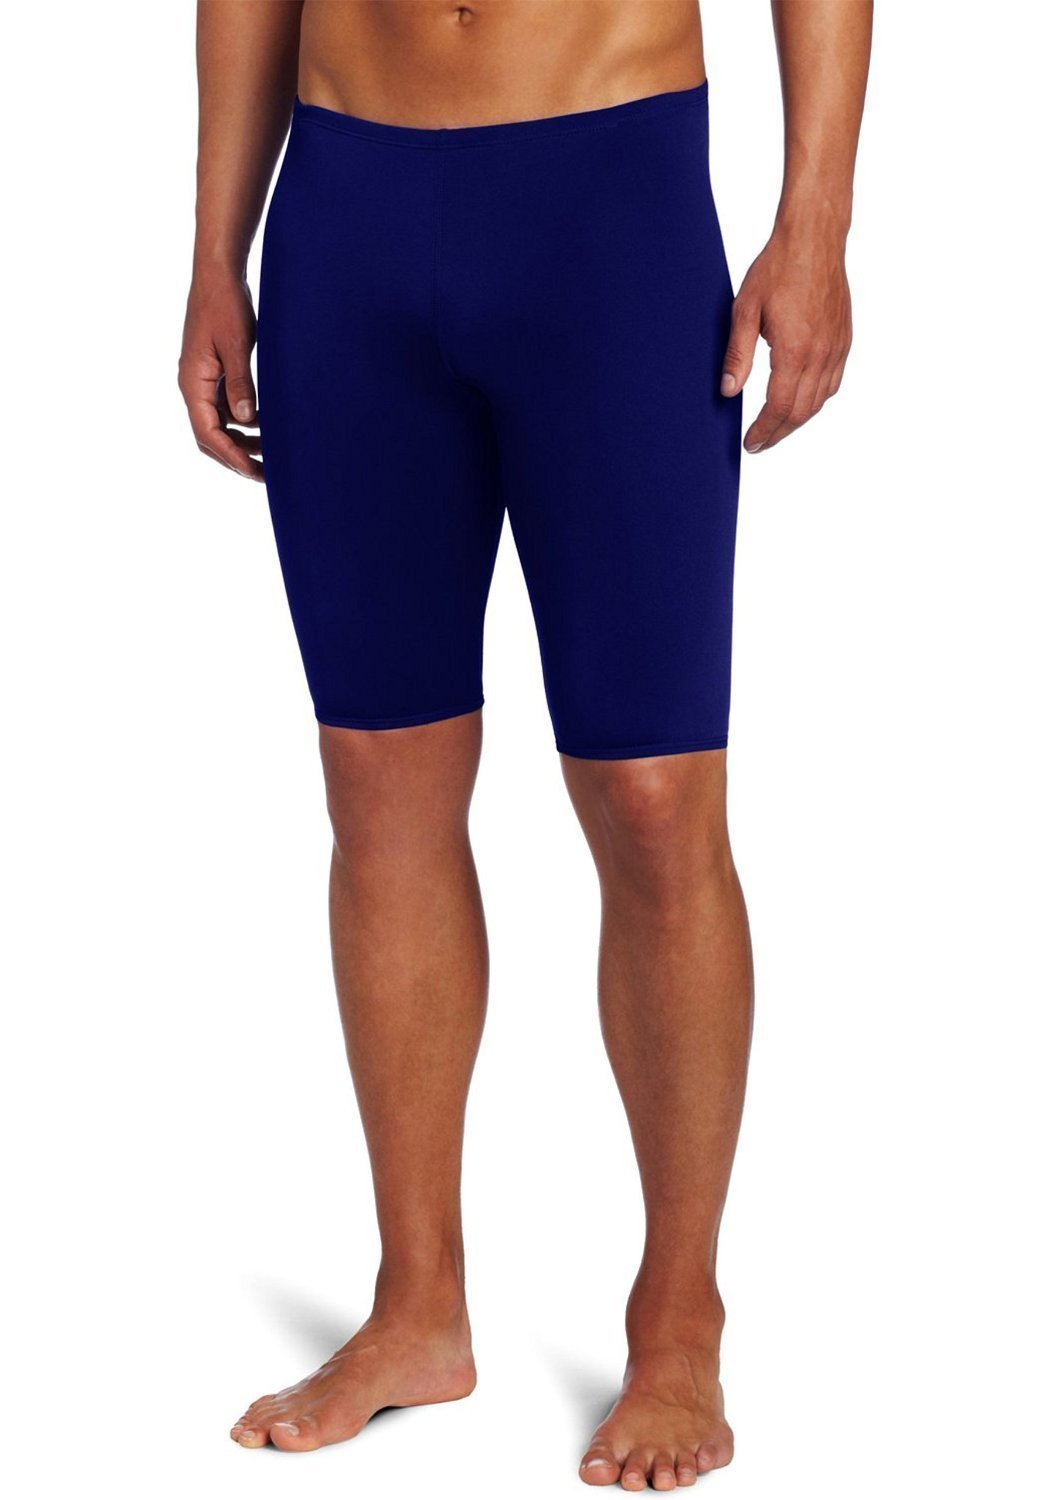 Lycot Compression Half Tight Plain Athletic Fit Multi Sports Cycling, Cricket, Football, Badminton, Gym, Fitness & Other Outdoor Inner Wear product image